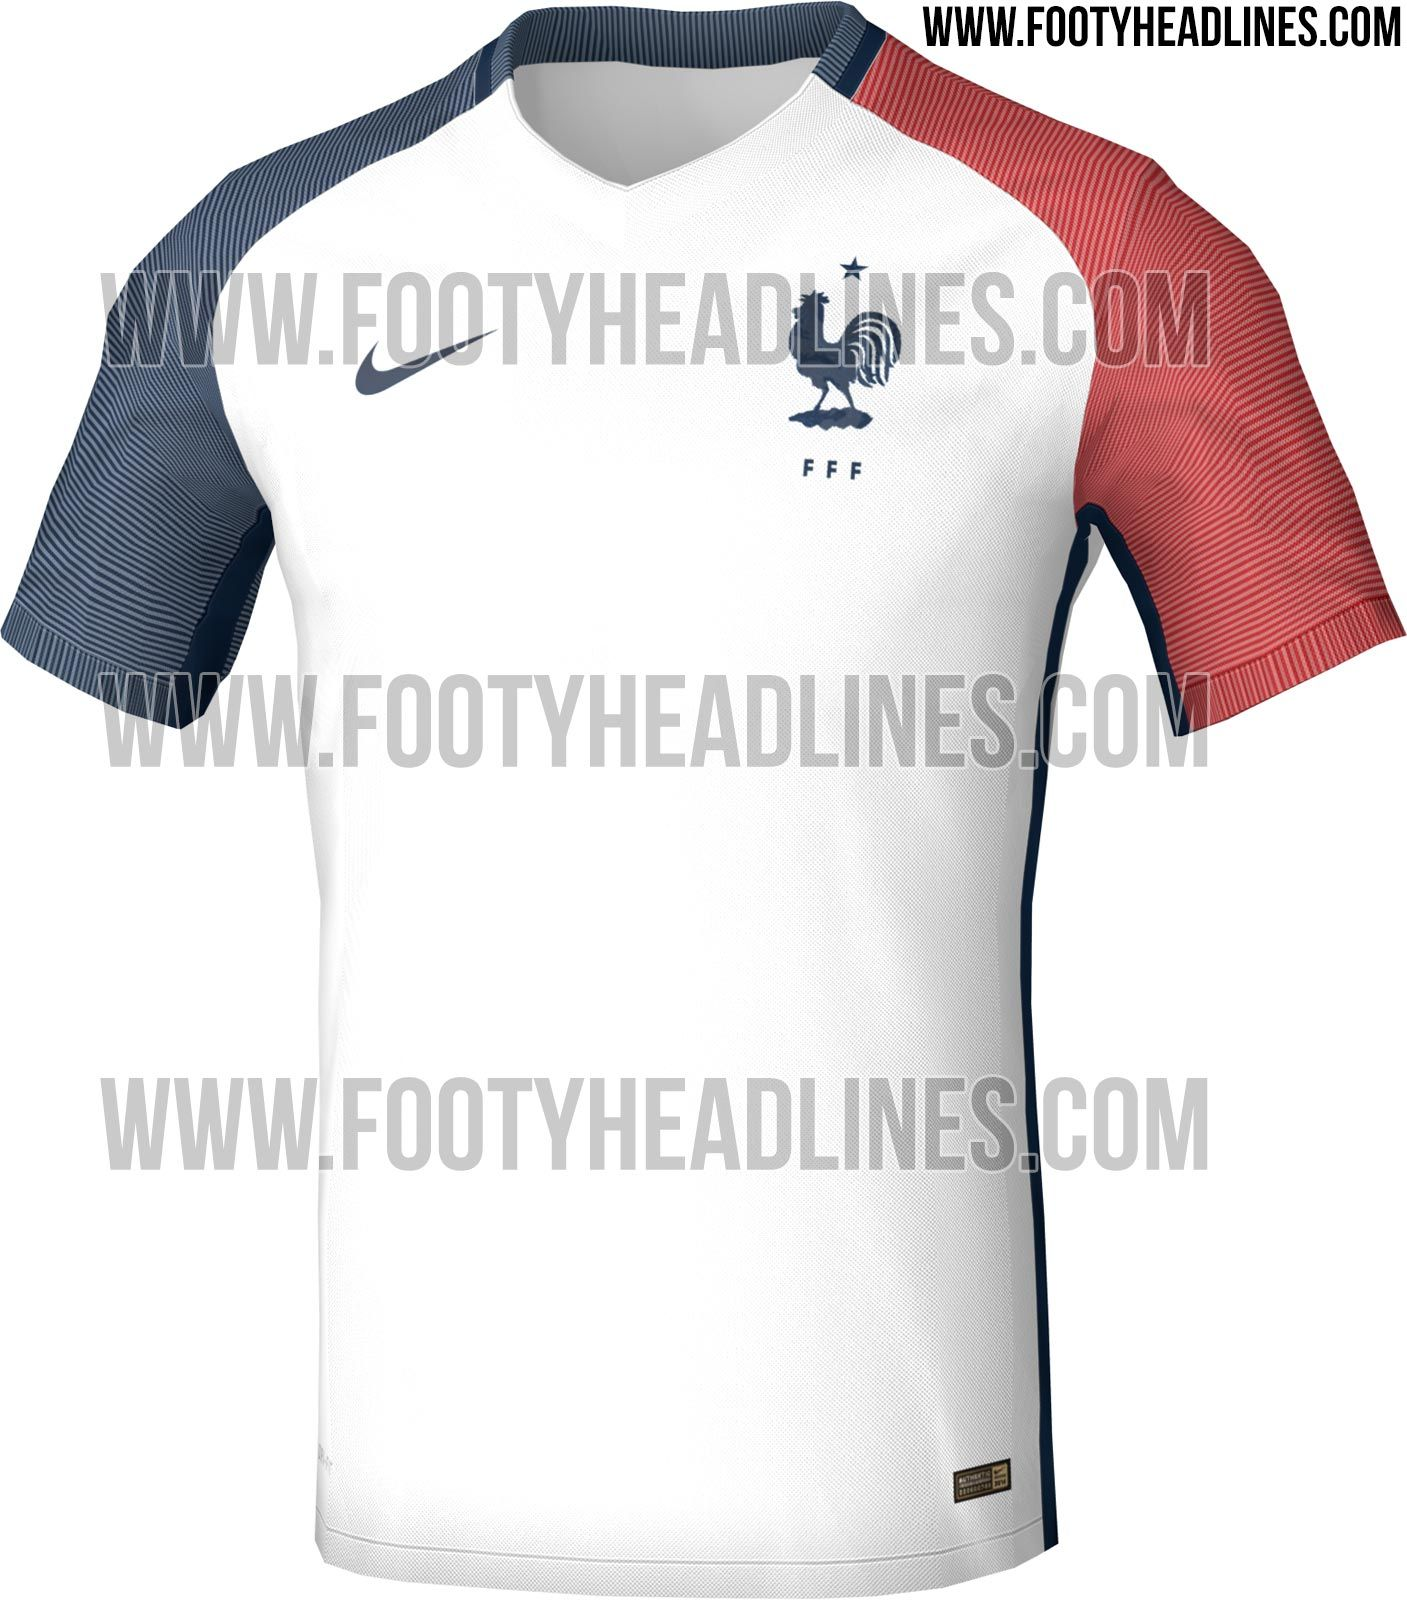 brand new ec282 a7aeb France Euro 2016 Away Kit Leaked - Footy Headlines ...